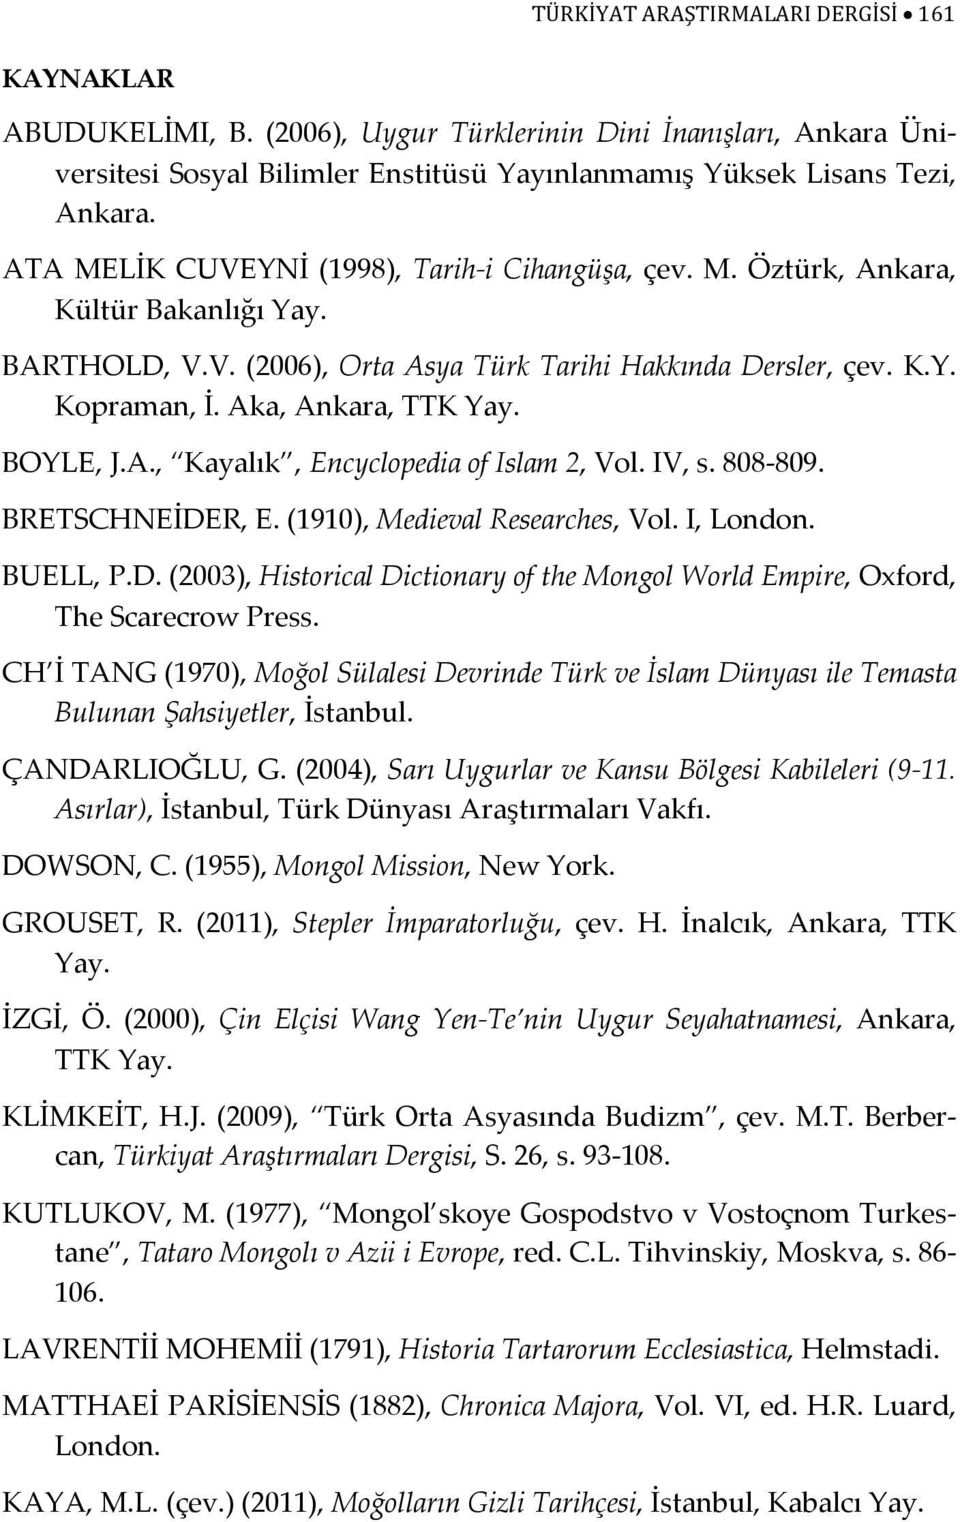 BOYLE, J.A., Kayalık, Encyclopedia of Islam 2, Vol. IV, s. 808-809. BRETSCHNEİDER, E. (1910), Medieval Researches, Vol. I, London. BUELL, P.D. (2003), Historical Dictionary of the Mongol World Empire, Oxford, The Scarecrow Press.